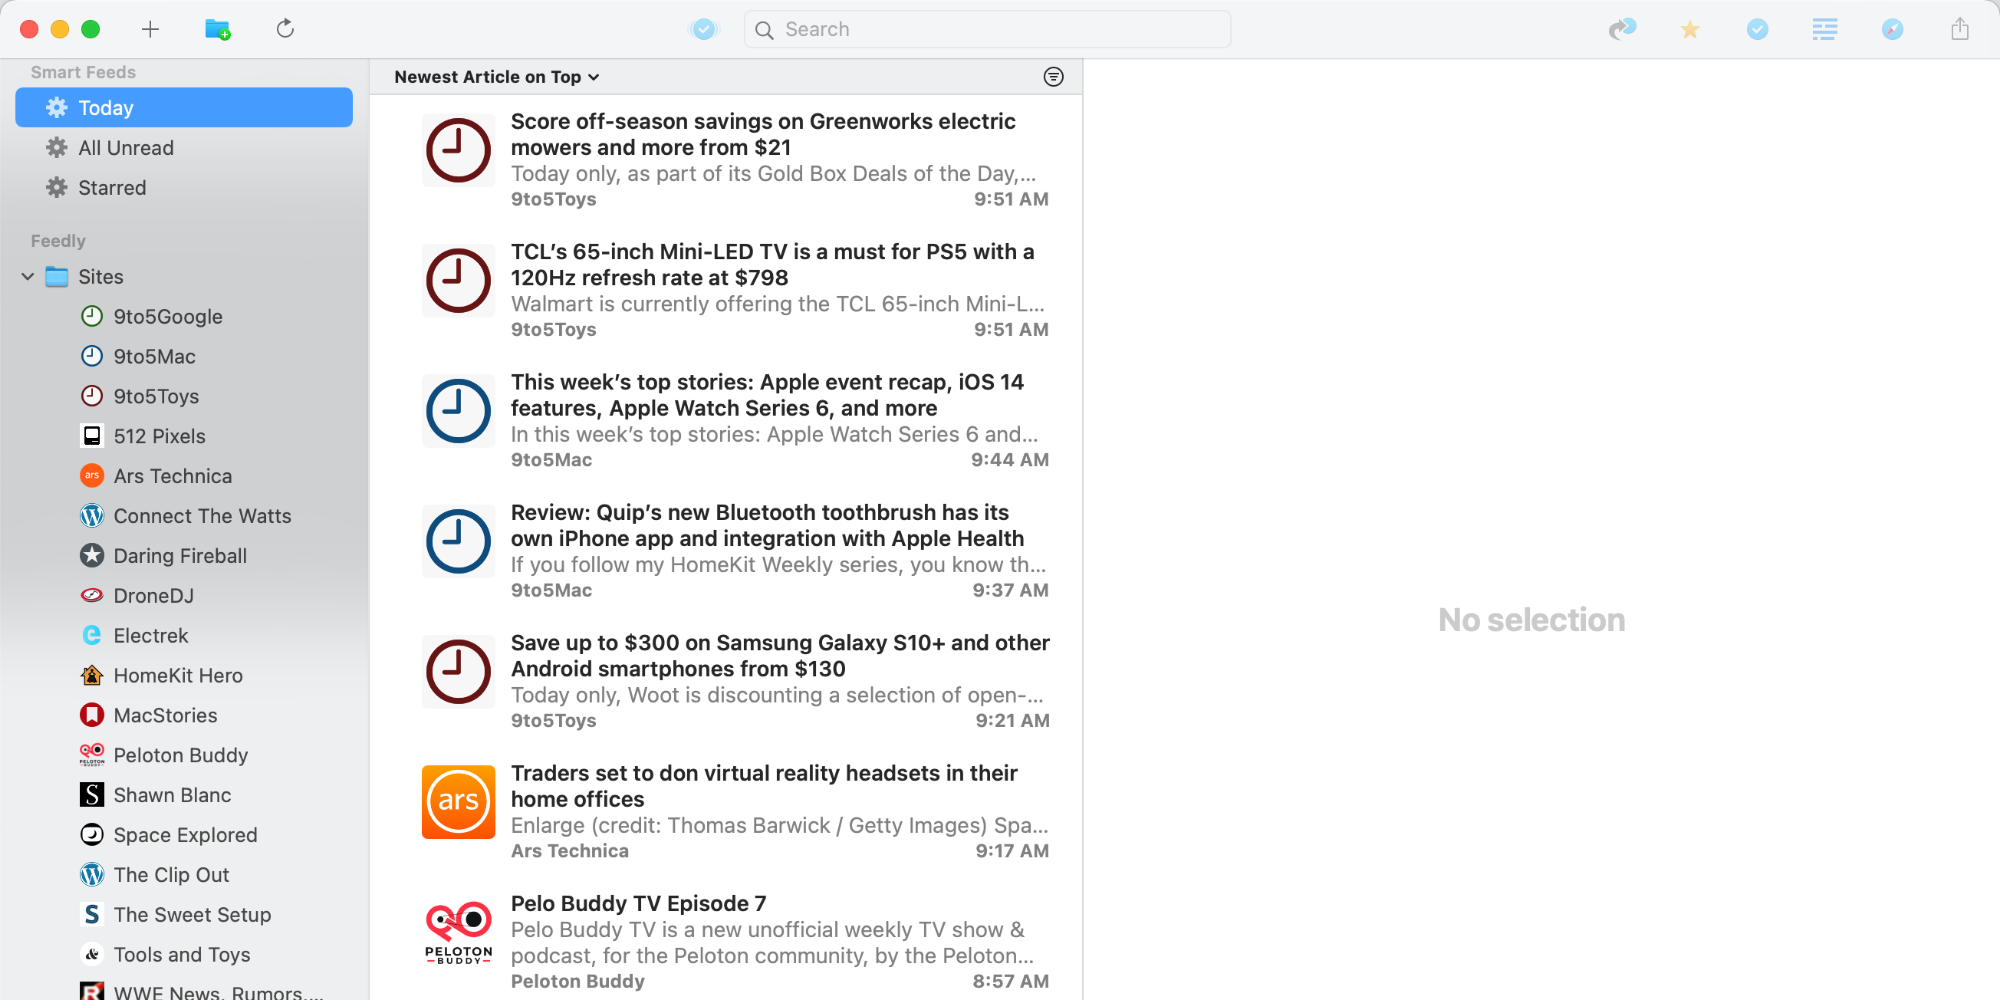 photo of NetNewsWire 5.1 for Mac brings Feedly syncing, Reader View, and more image